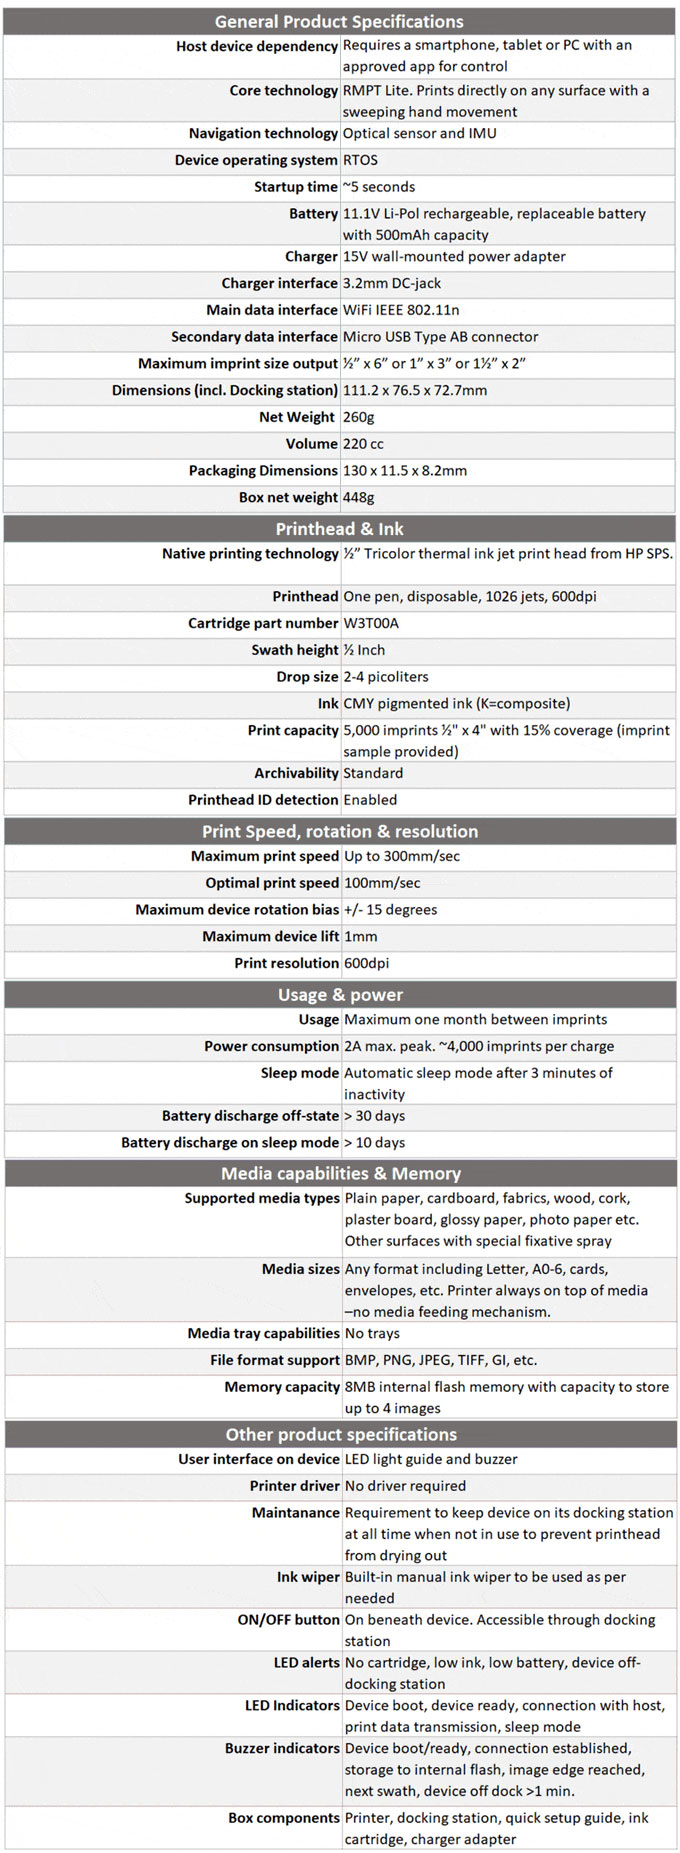 PrintBrush Technical Specifications